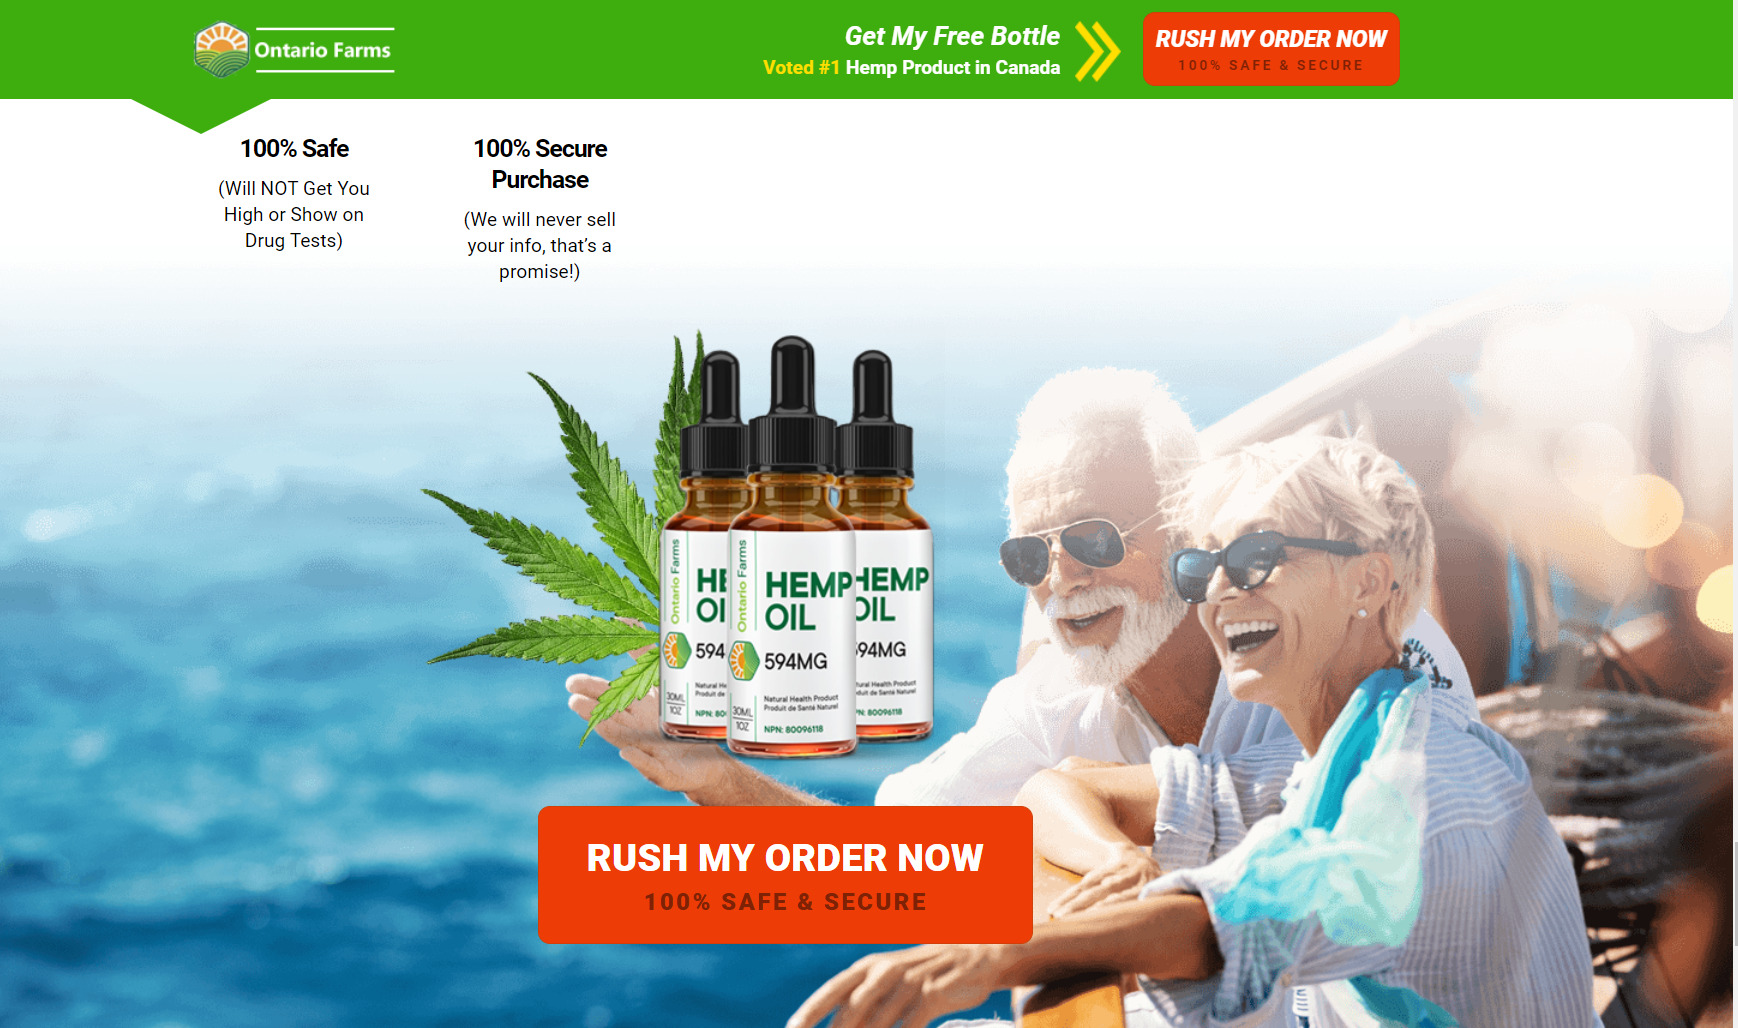 ontario farms cbd oil buy